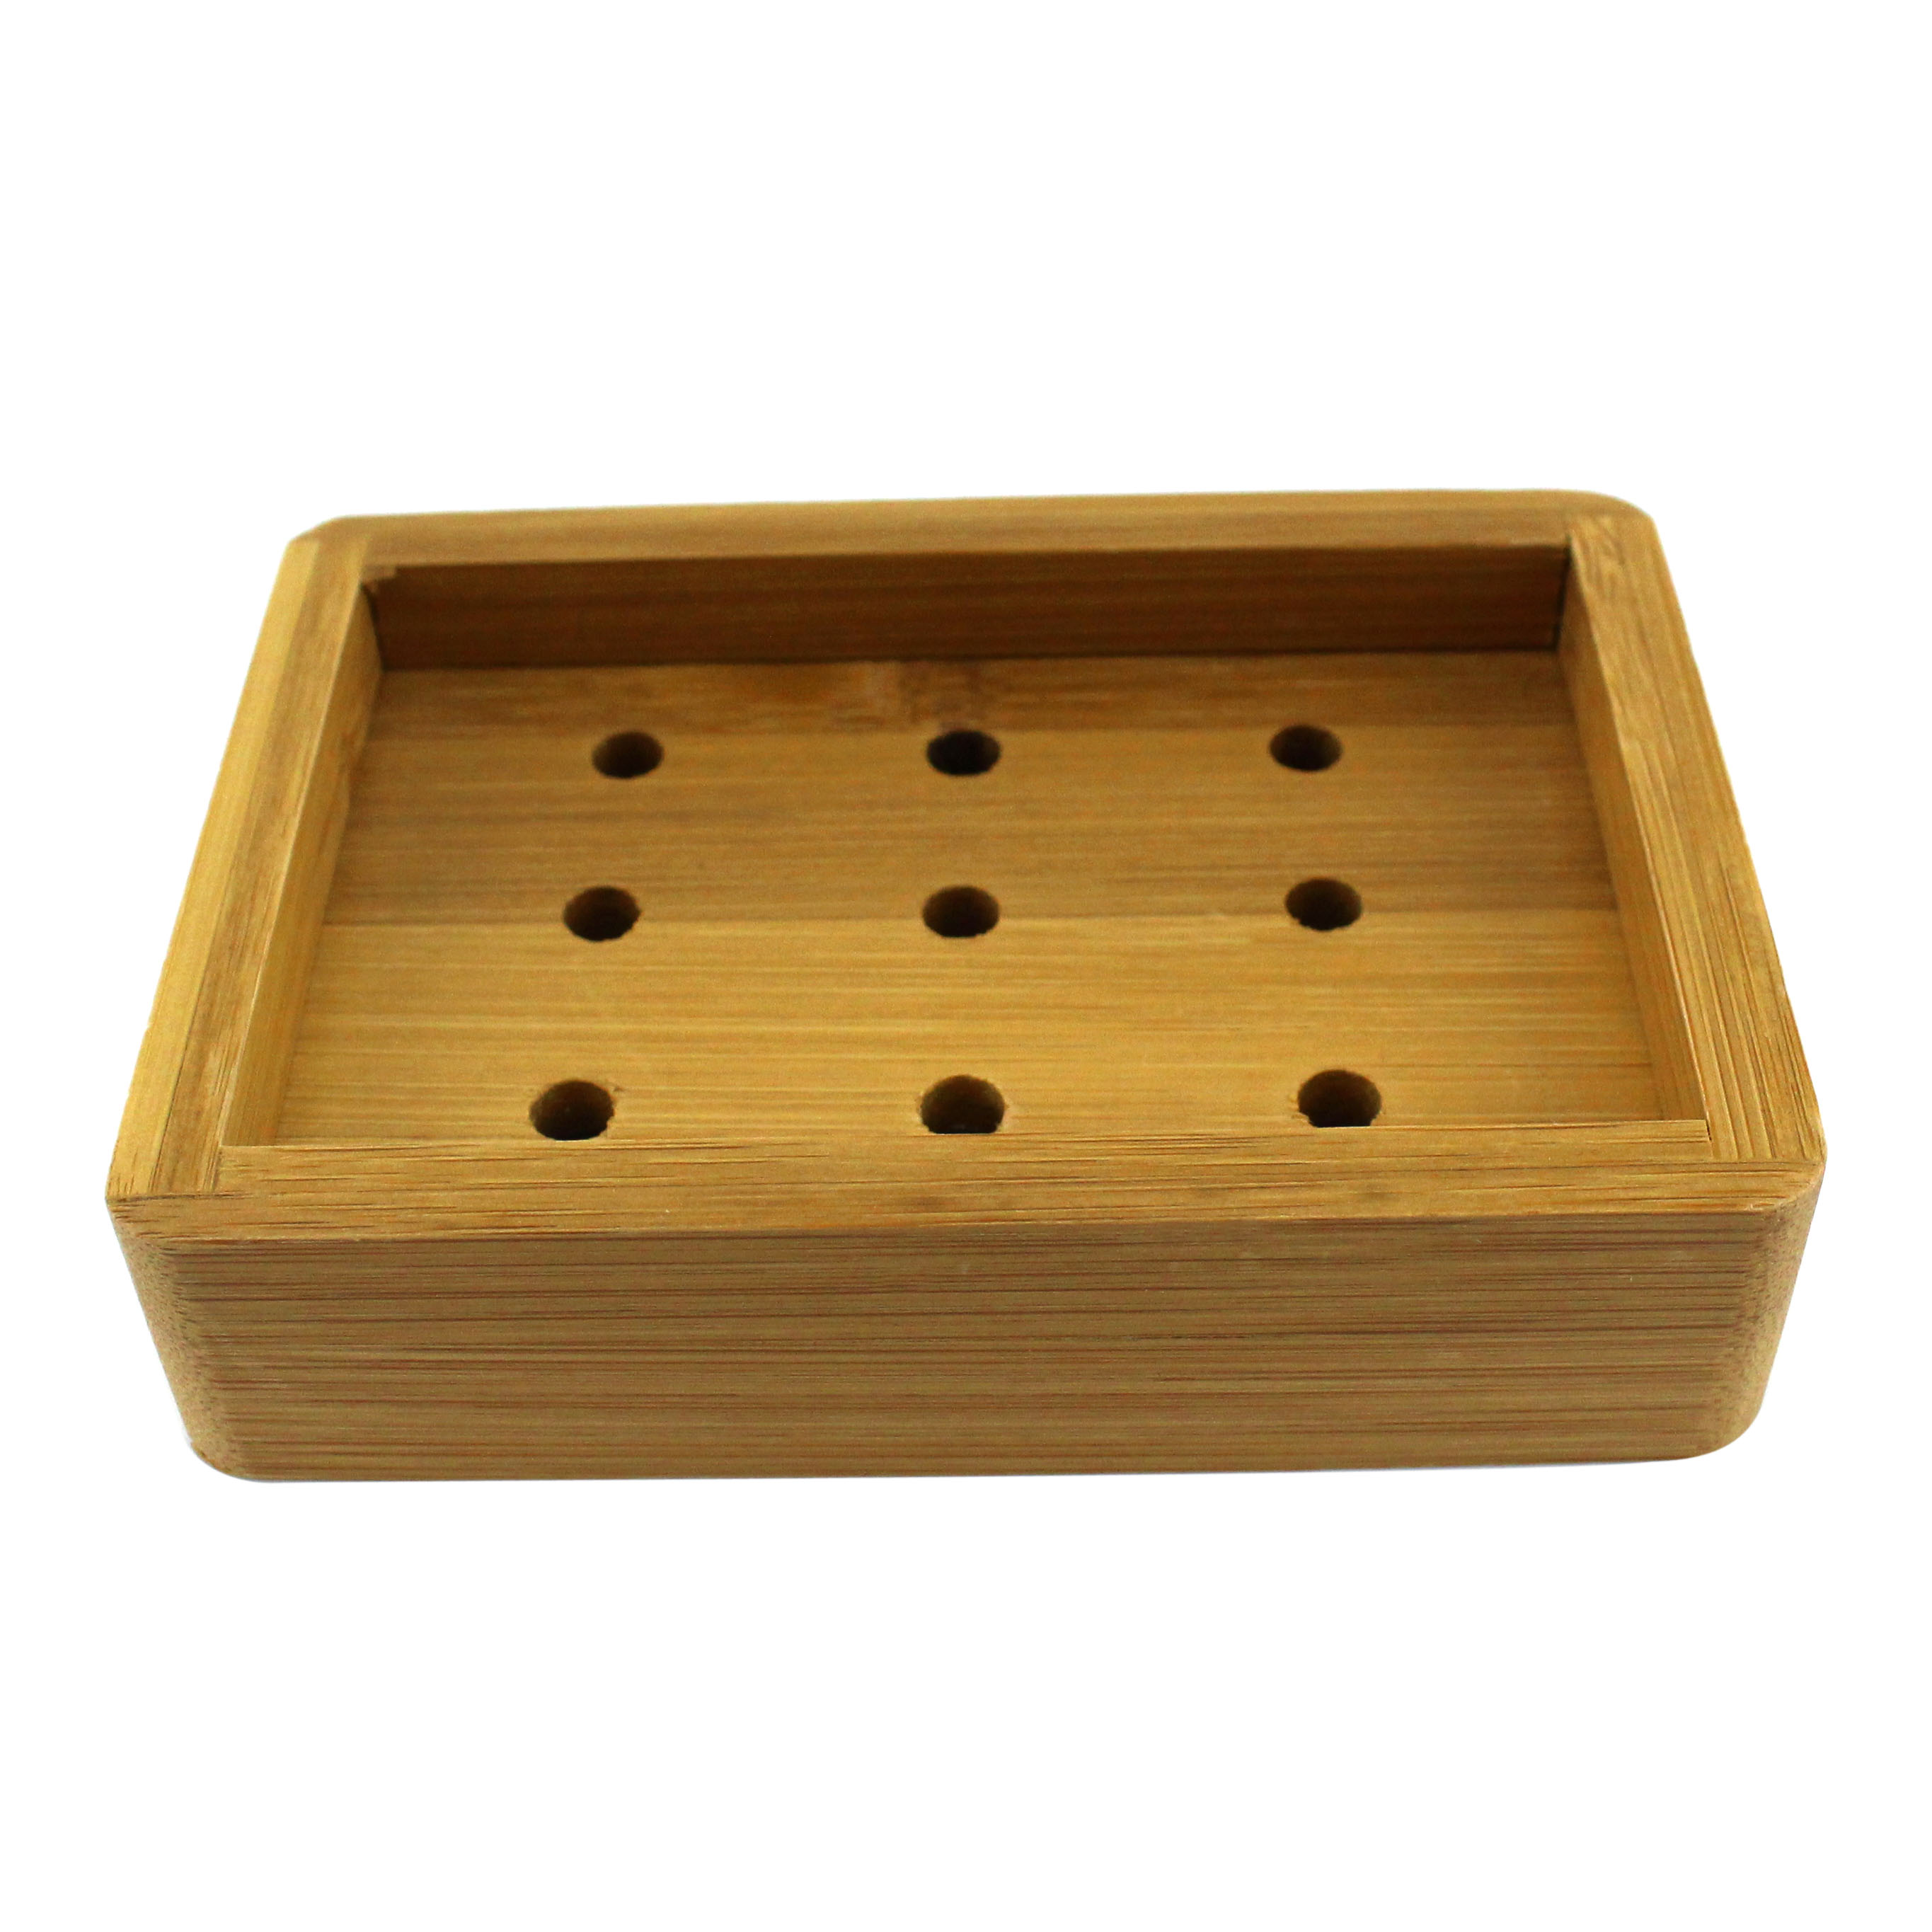 Homex Bamboo Soap Dish Homex